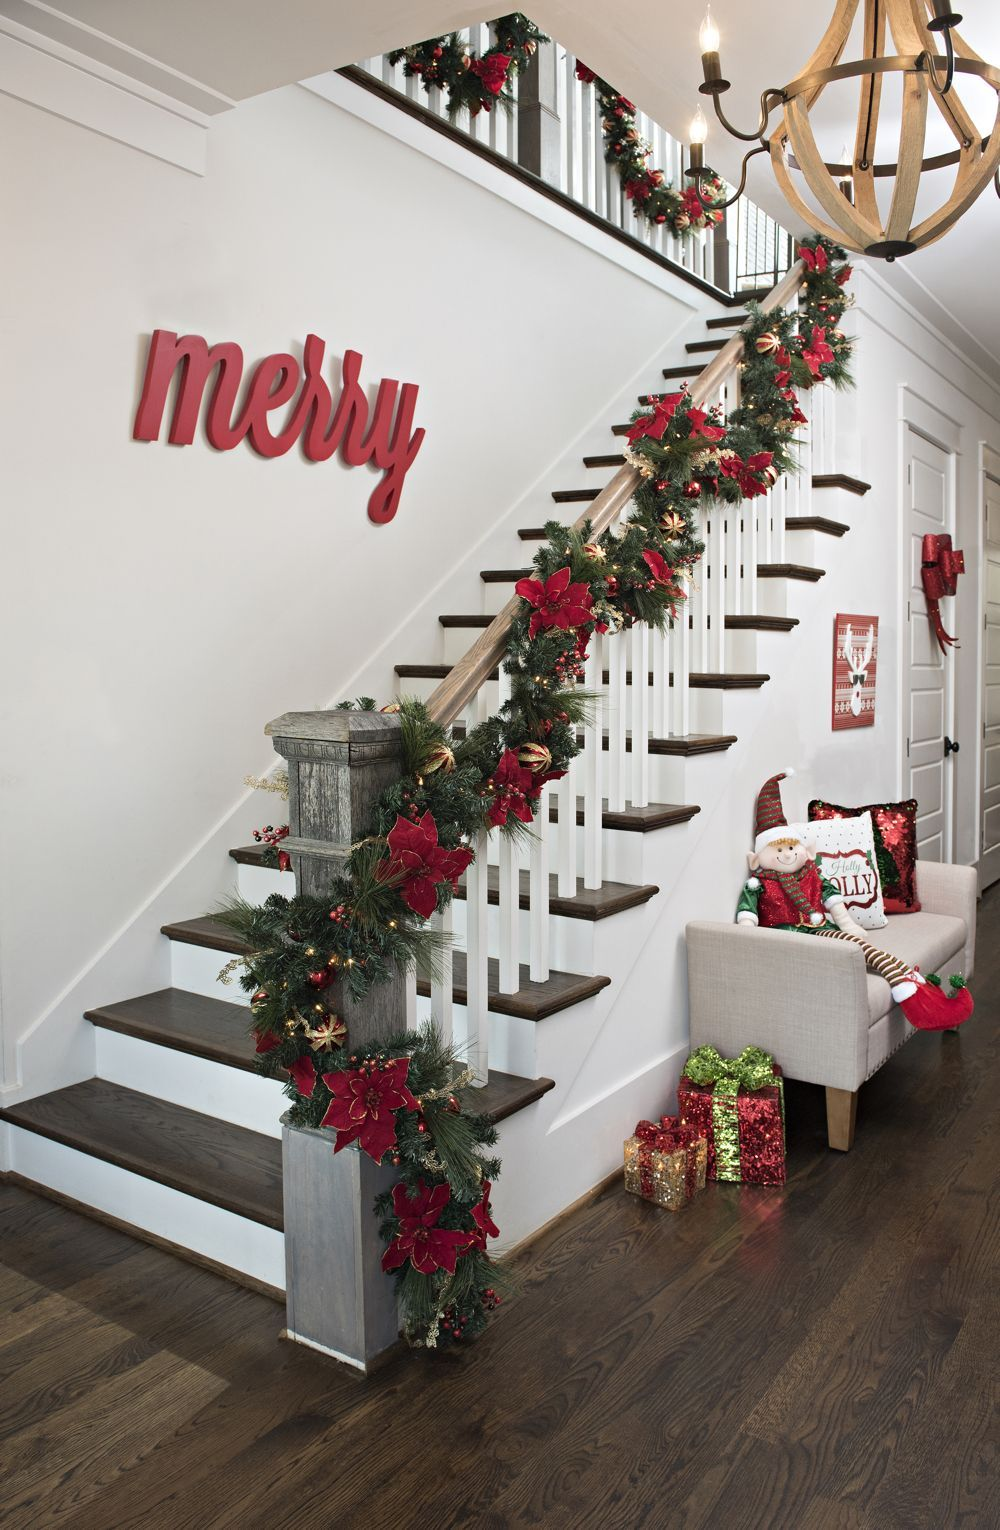 Great Check Out Our Merry And Bright Christmas Decor For Bright Shades That Will  Make Your Home